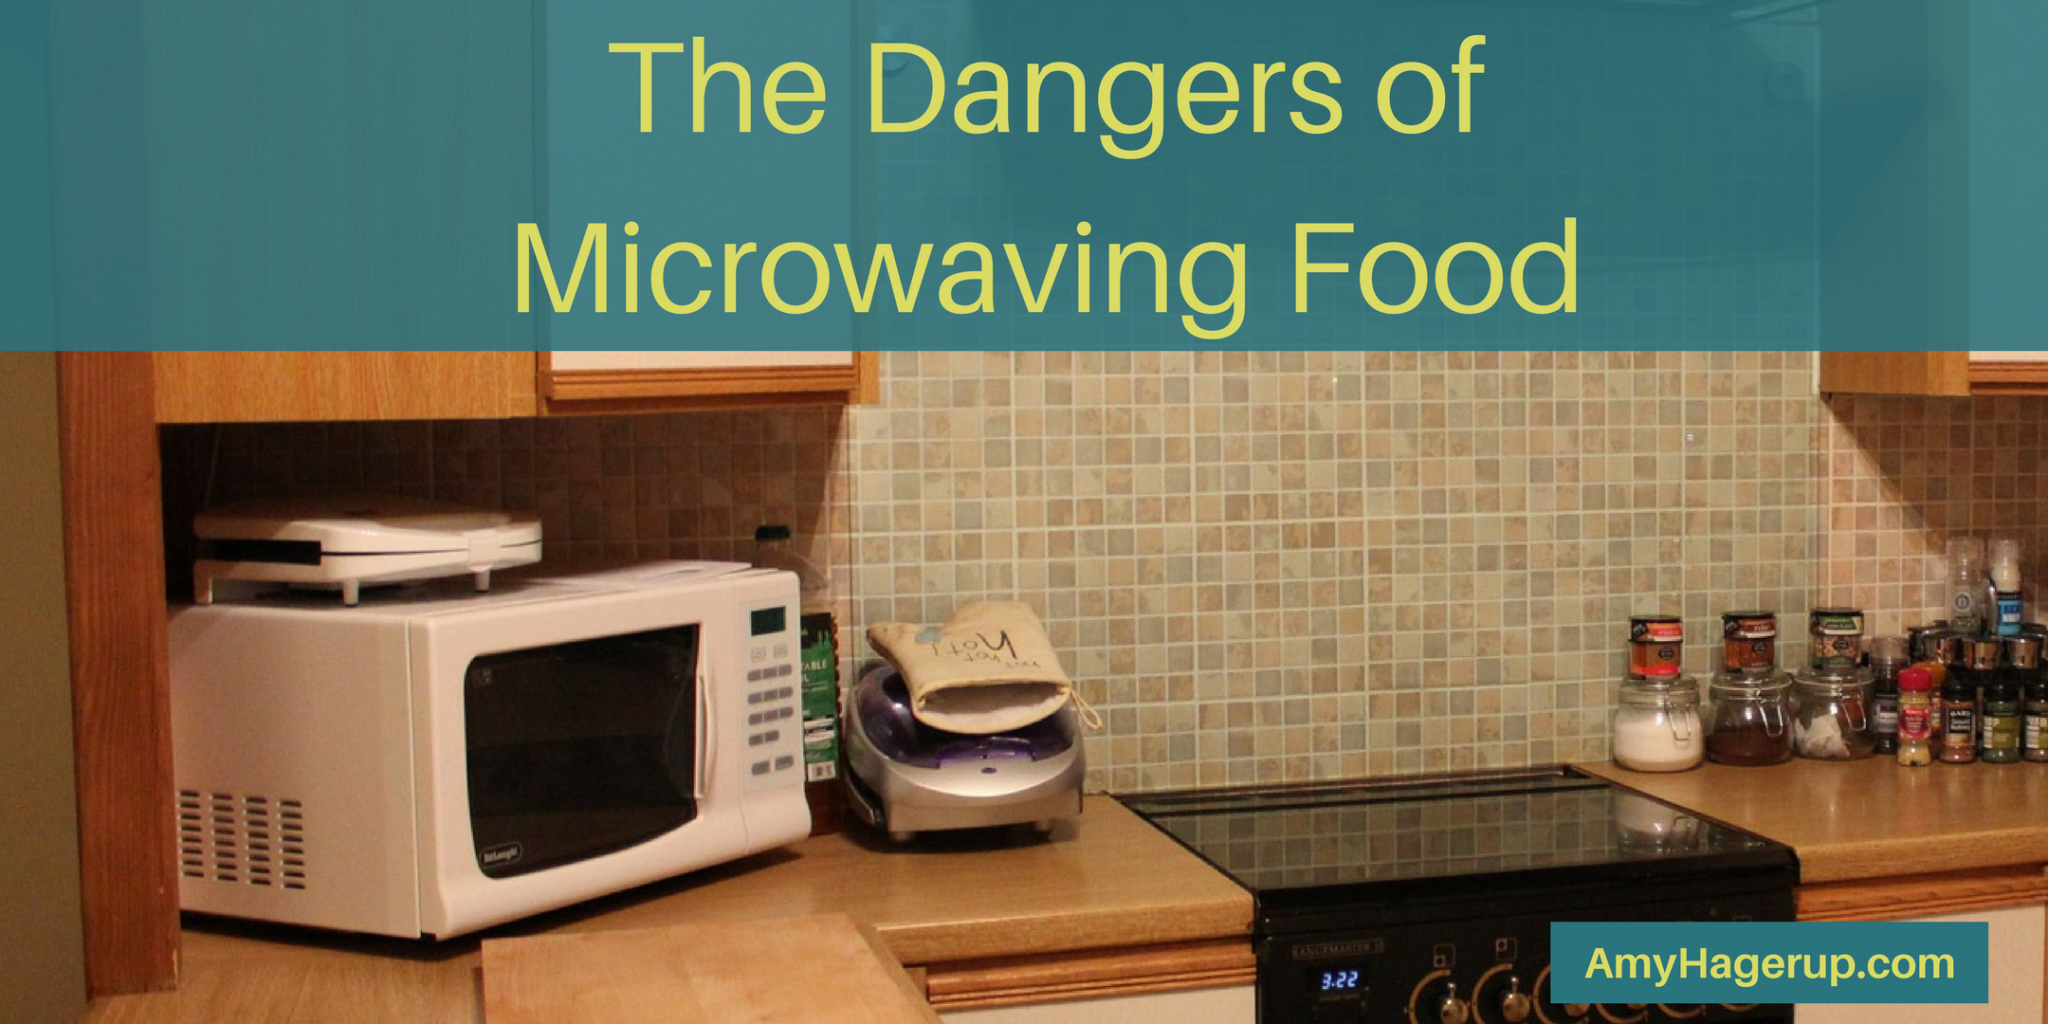 Check out the dangers of microwaving food and what you can do about it.